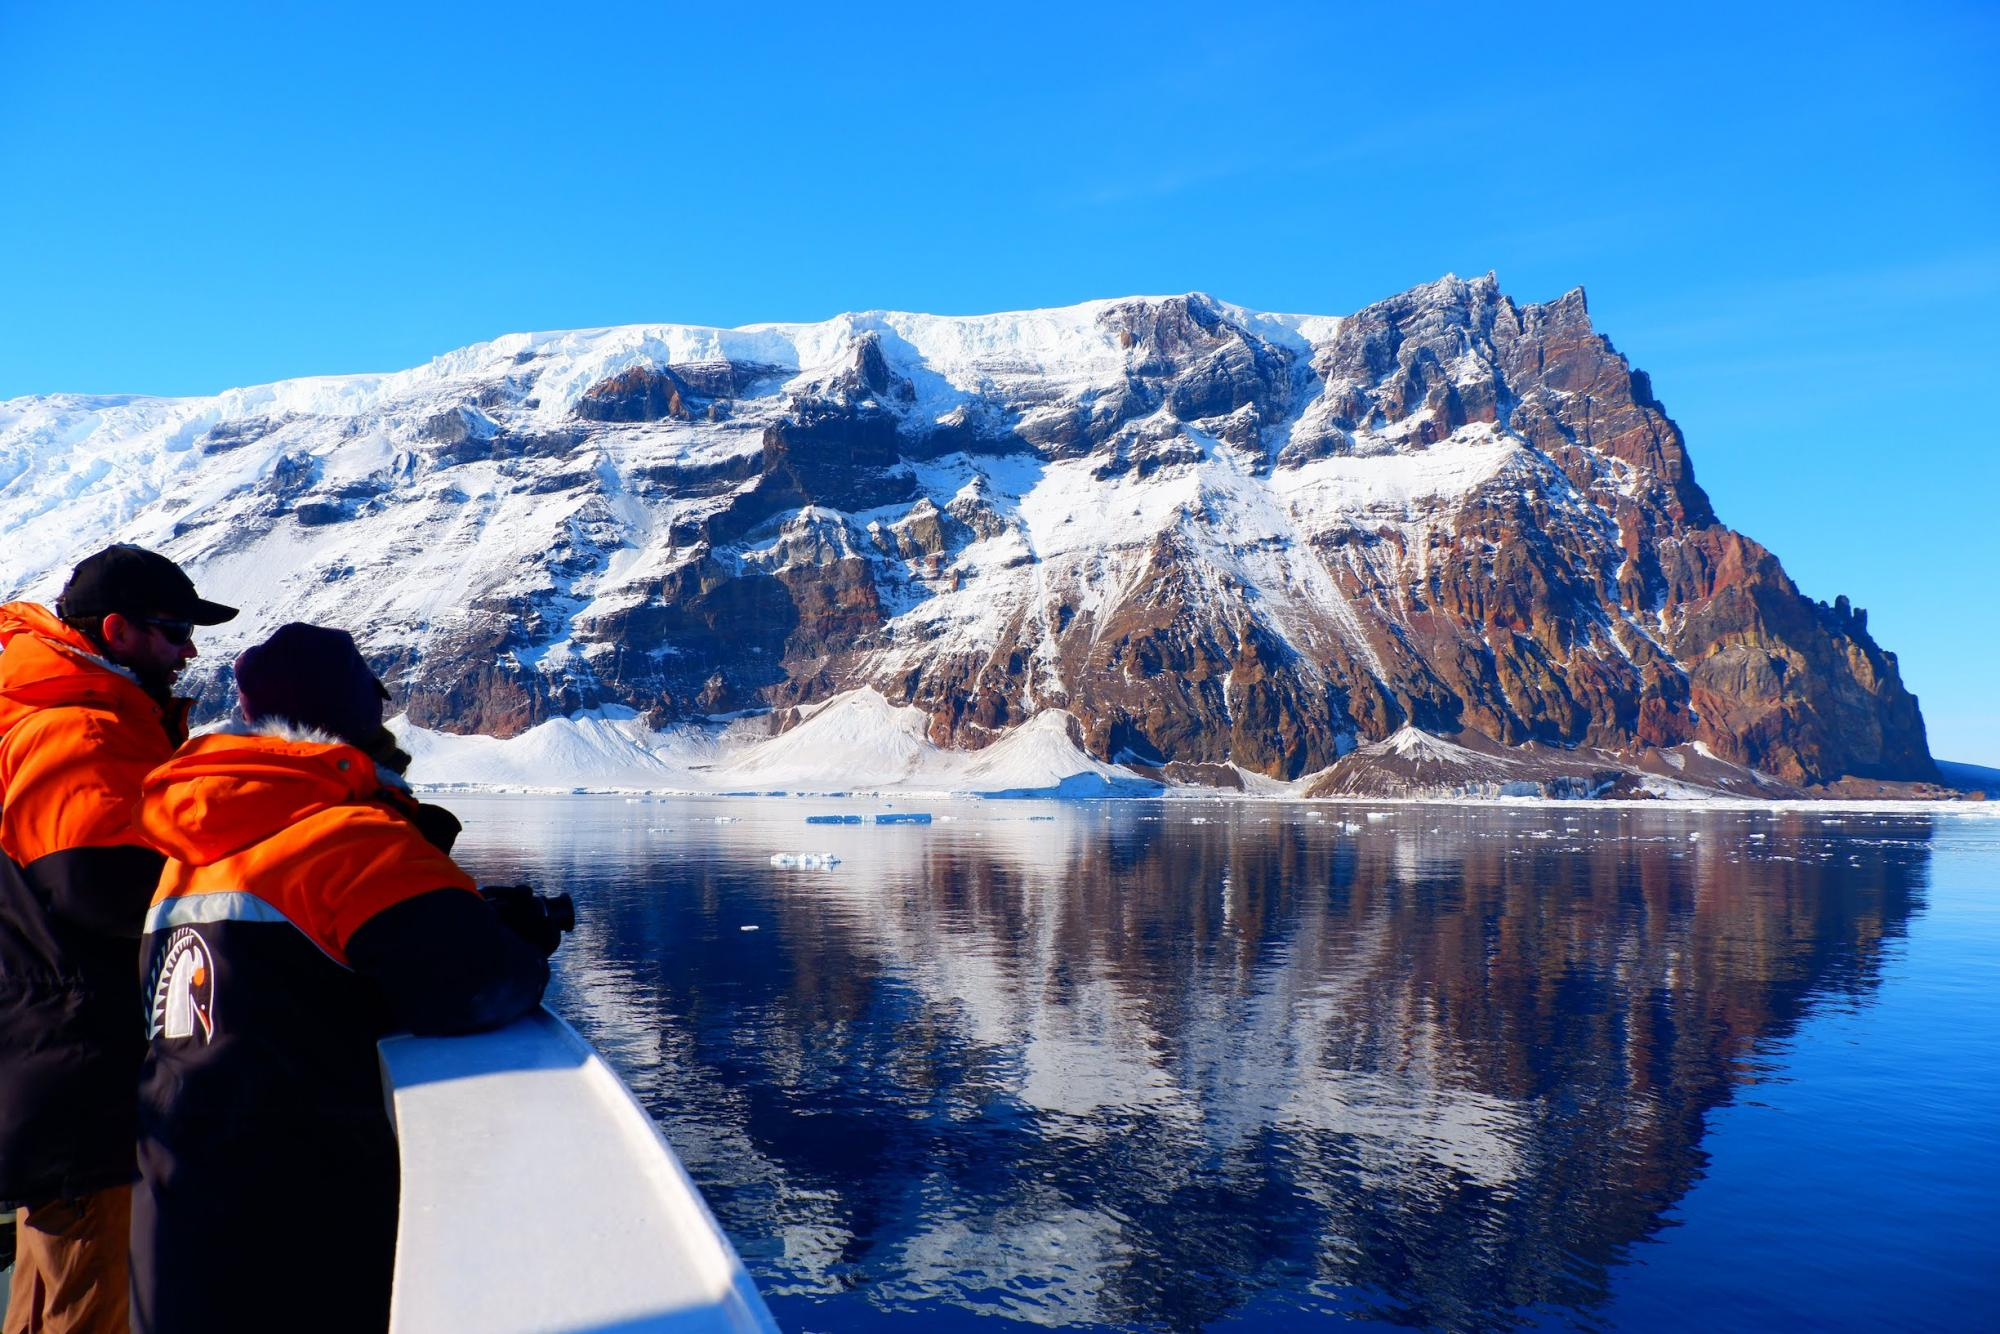 Scientists look over edge of boat in Antarctica